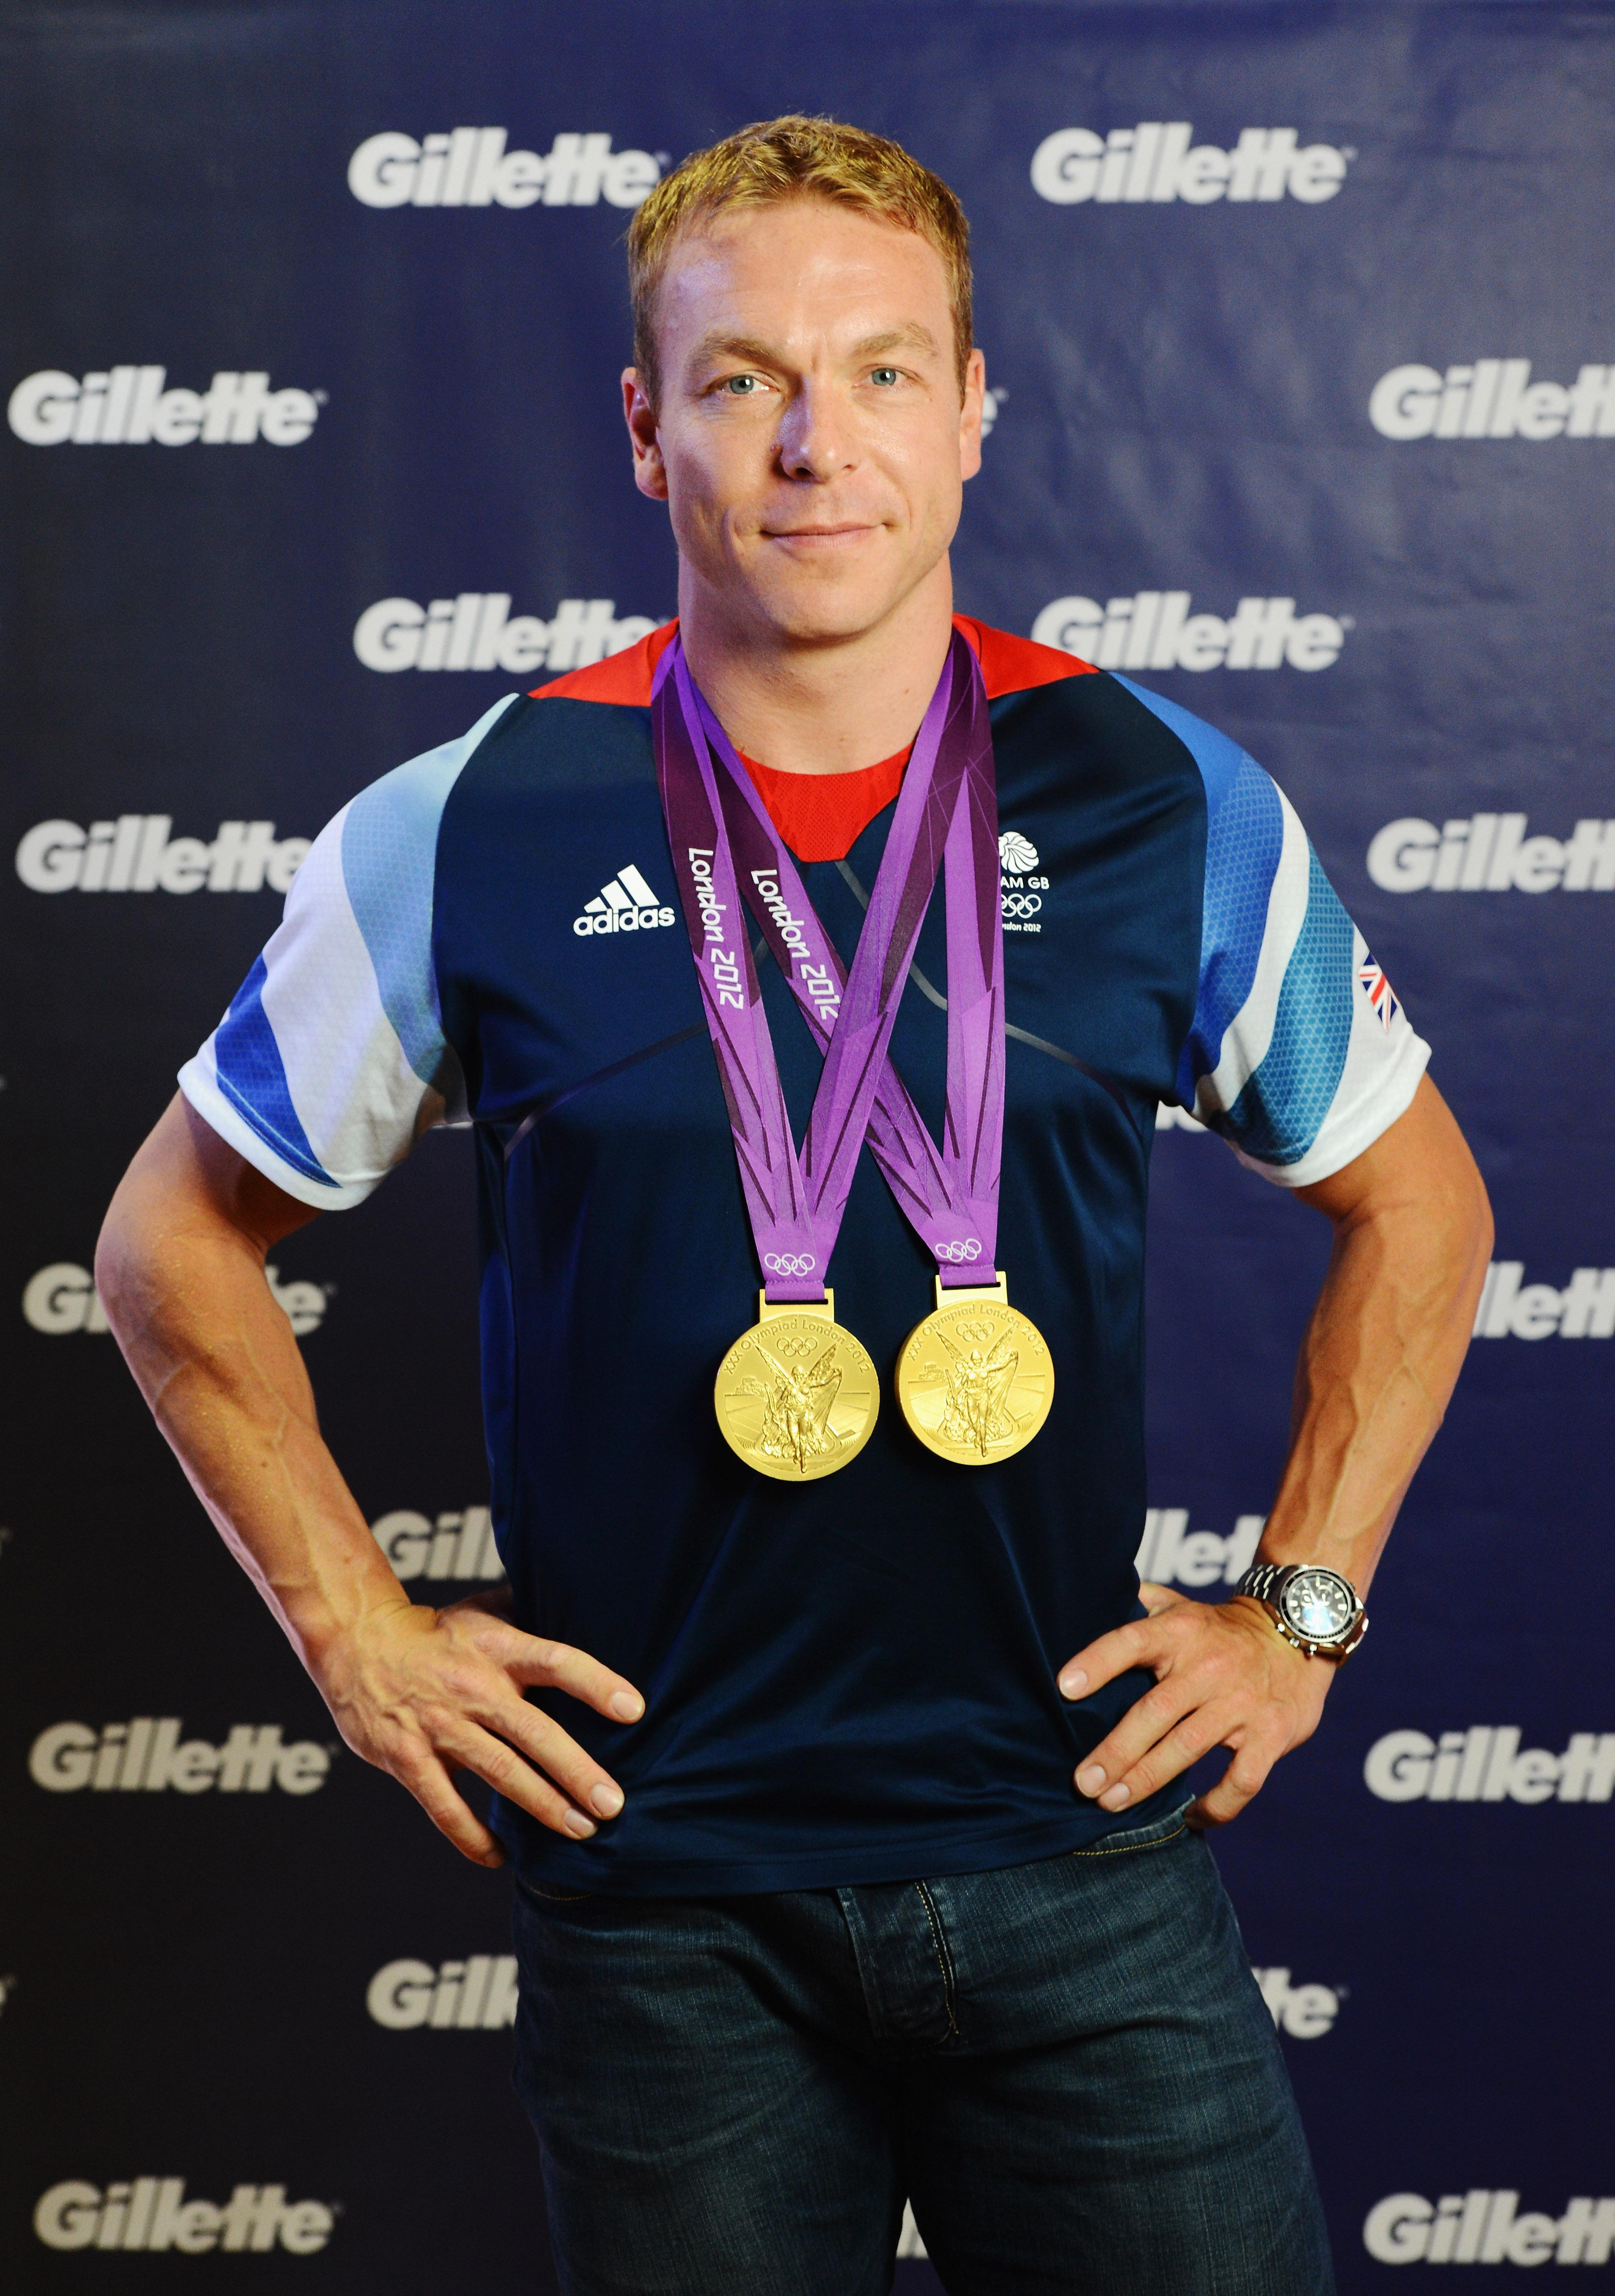 Scotland have produced some of the world's finest athletes over the years